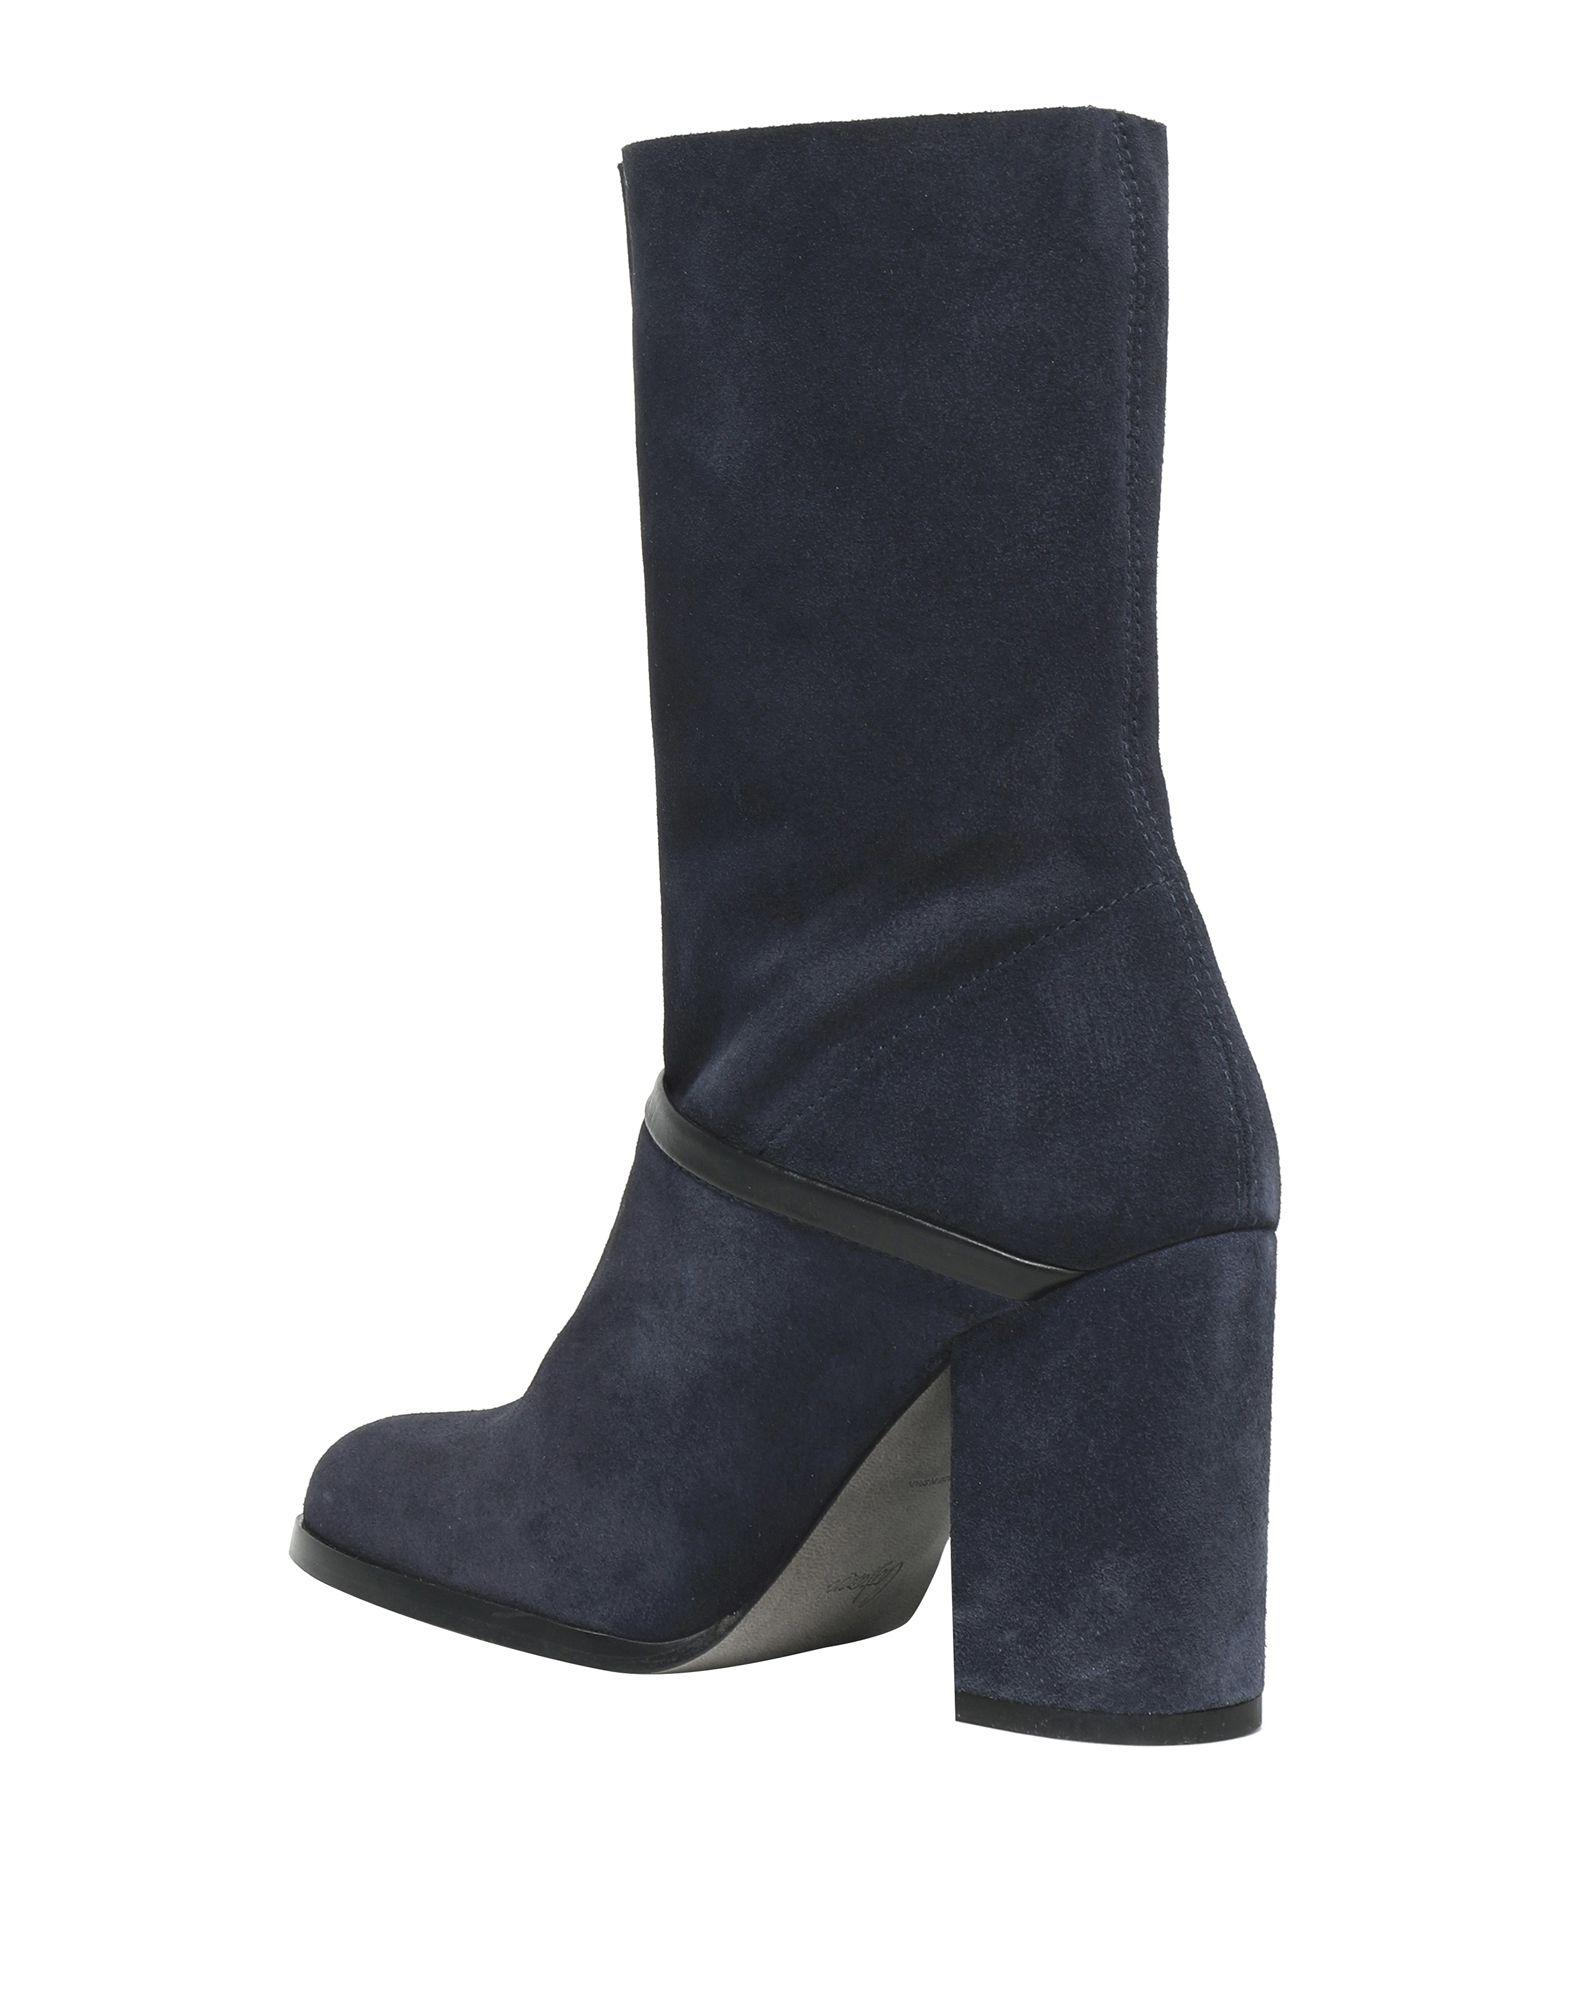 b4eae9a48a95 Castaner Ankle Boots in Blue - Save 23% - Lyst